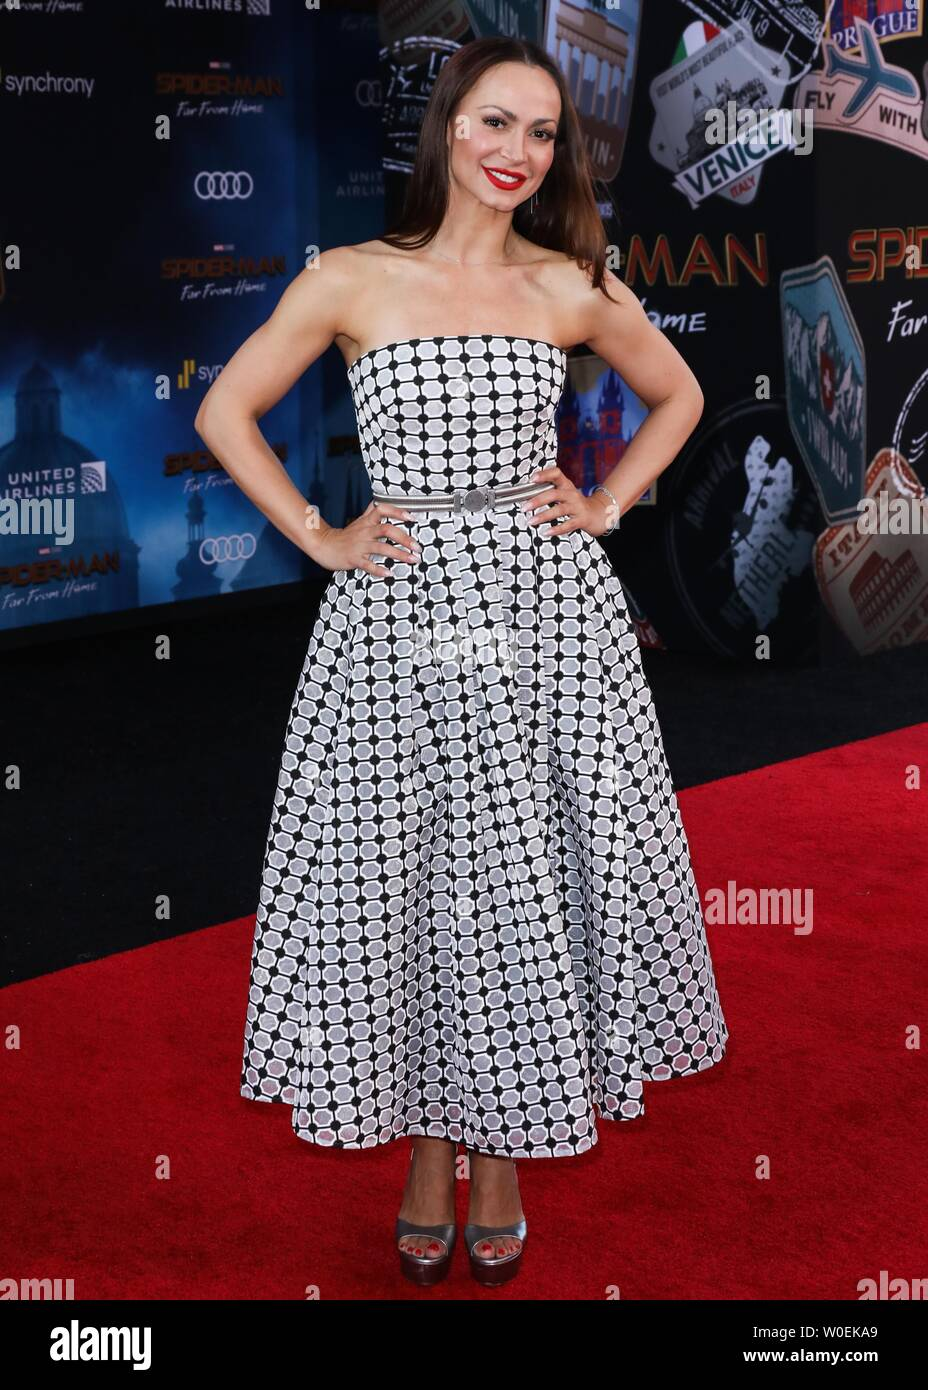 Hollywood, United States. 26th June, 2019. HOLLYWOOD, LOS ANGELES, CALIFORNIA, USA - JUNE 26: Karina Smirnoff arrives at the Premiere Of Sony Pictures' 'Spider-Man Far From Home' held at the TCL Chinese Theatre IMAX on June 26, 2019 in Hollywood, Los Angeles, California, United States. (Photo by David Acosta/Image Press Agency) Credit: Image Press Agency/Alamy Live News Stock Photo